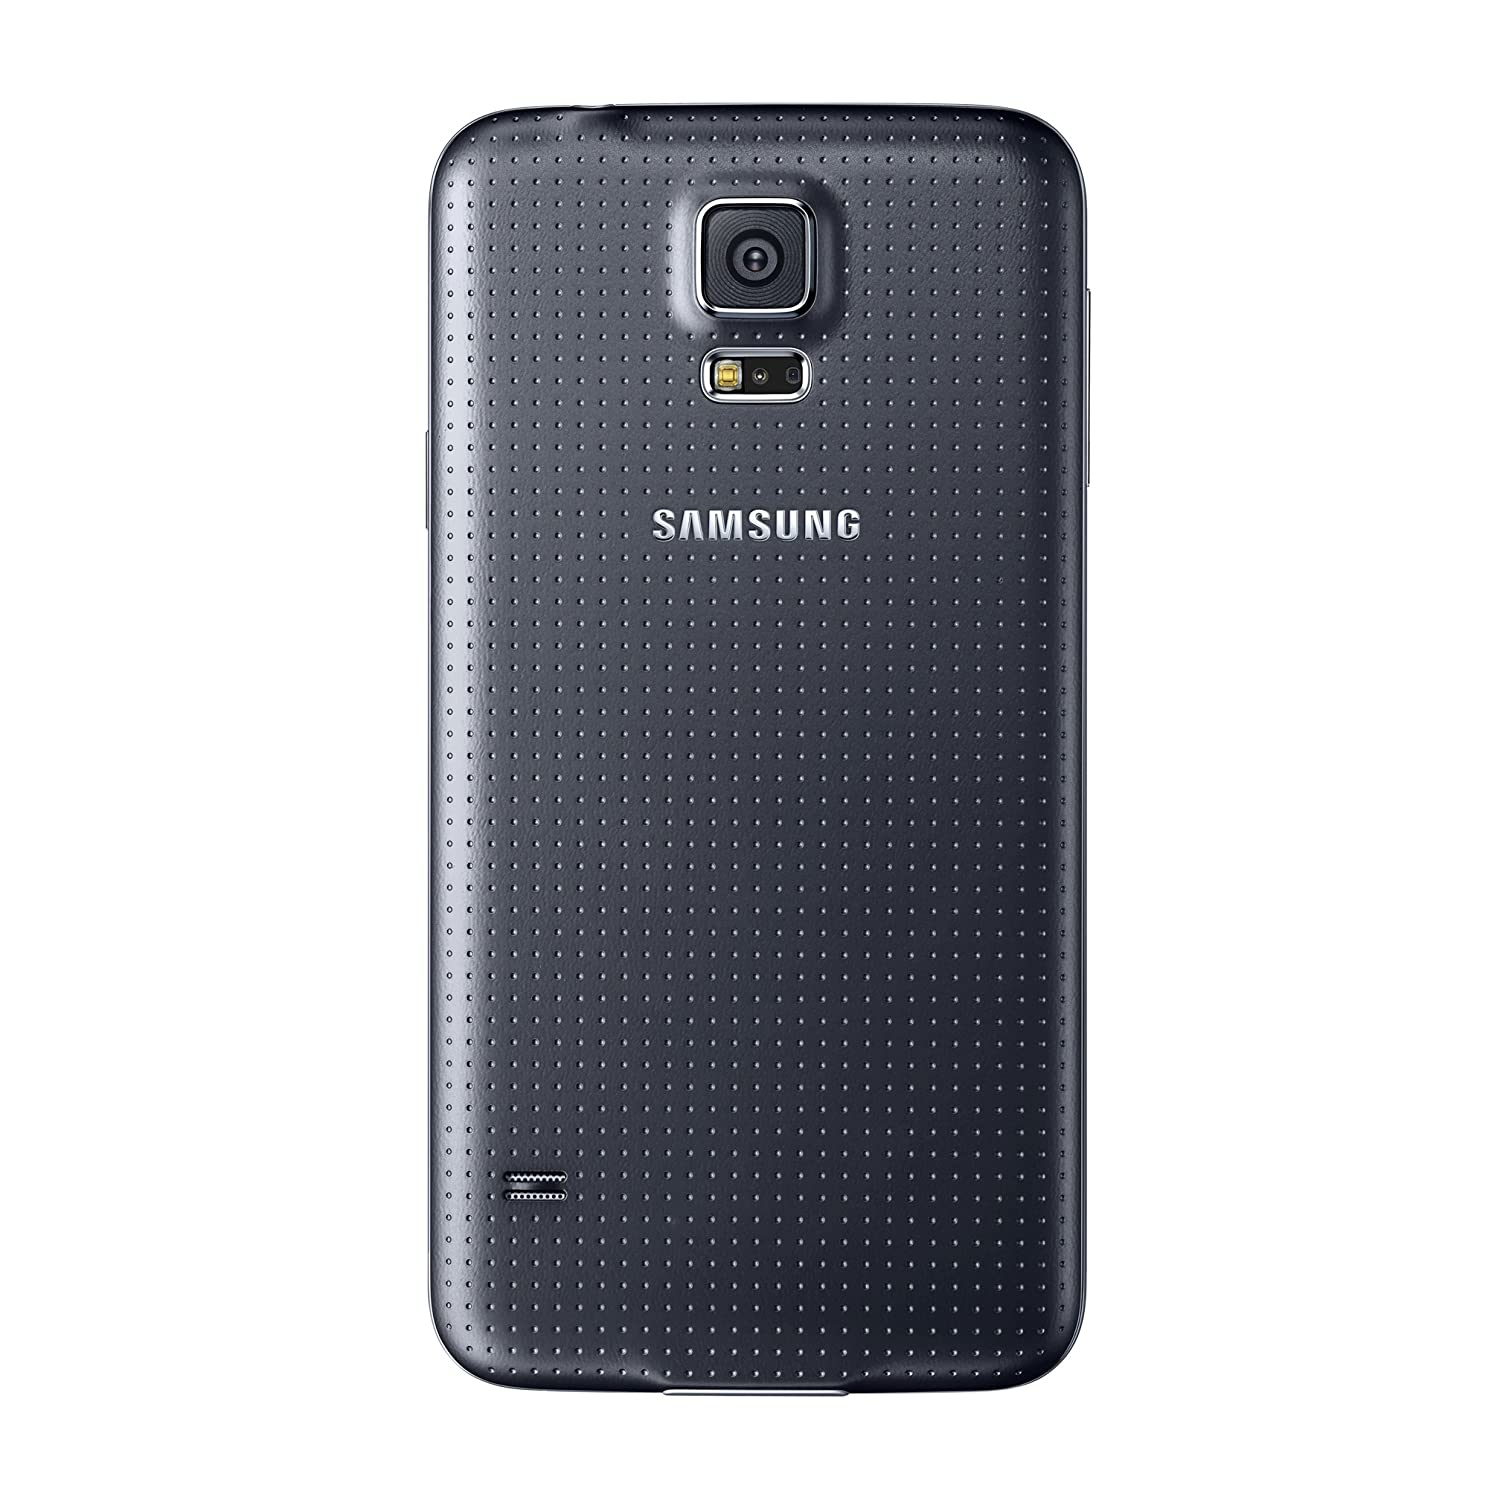 samsung phone back. amazon.com: samsung galaxy s5 case wireless charging battery cover - black: cell phones \u0026 accessories phone back n